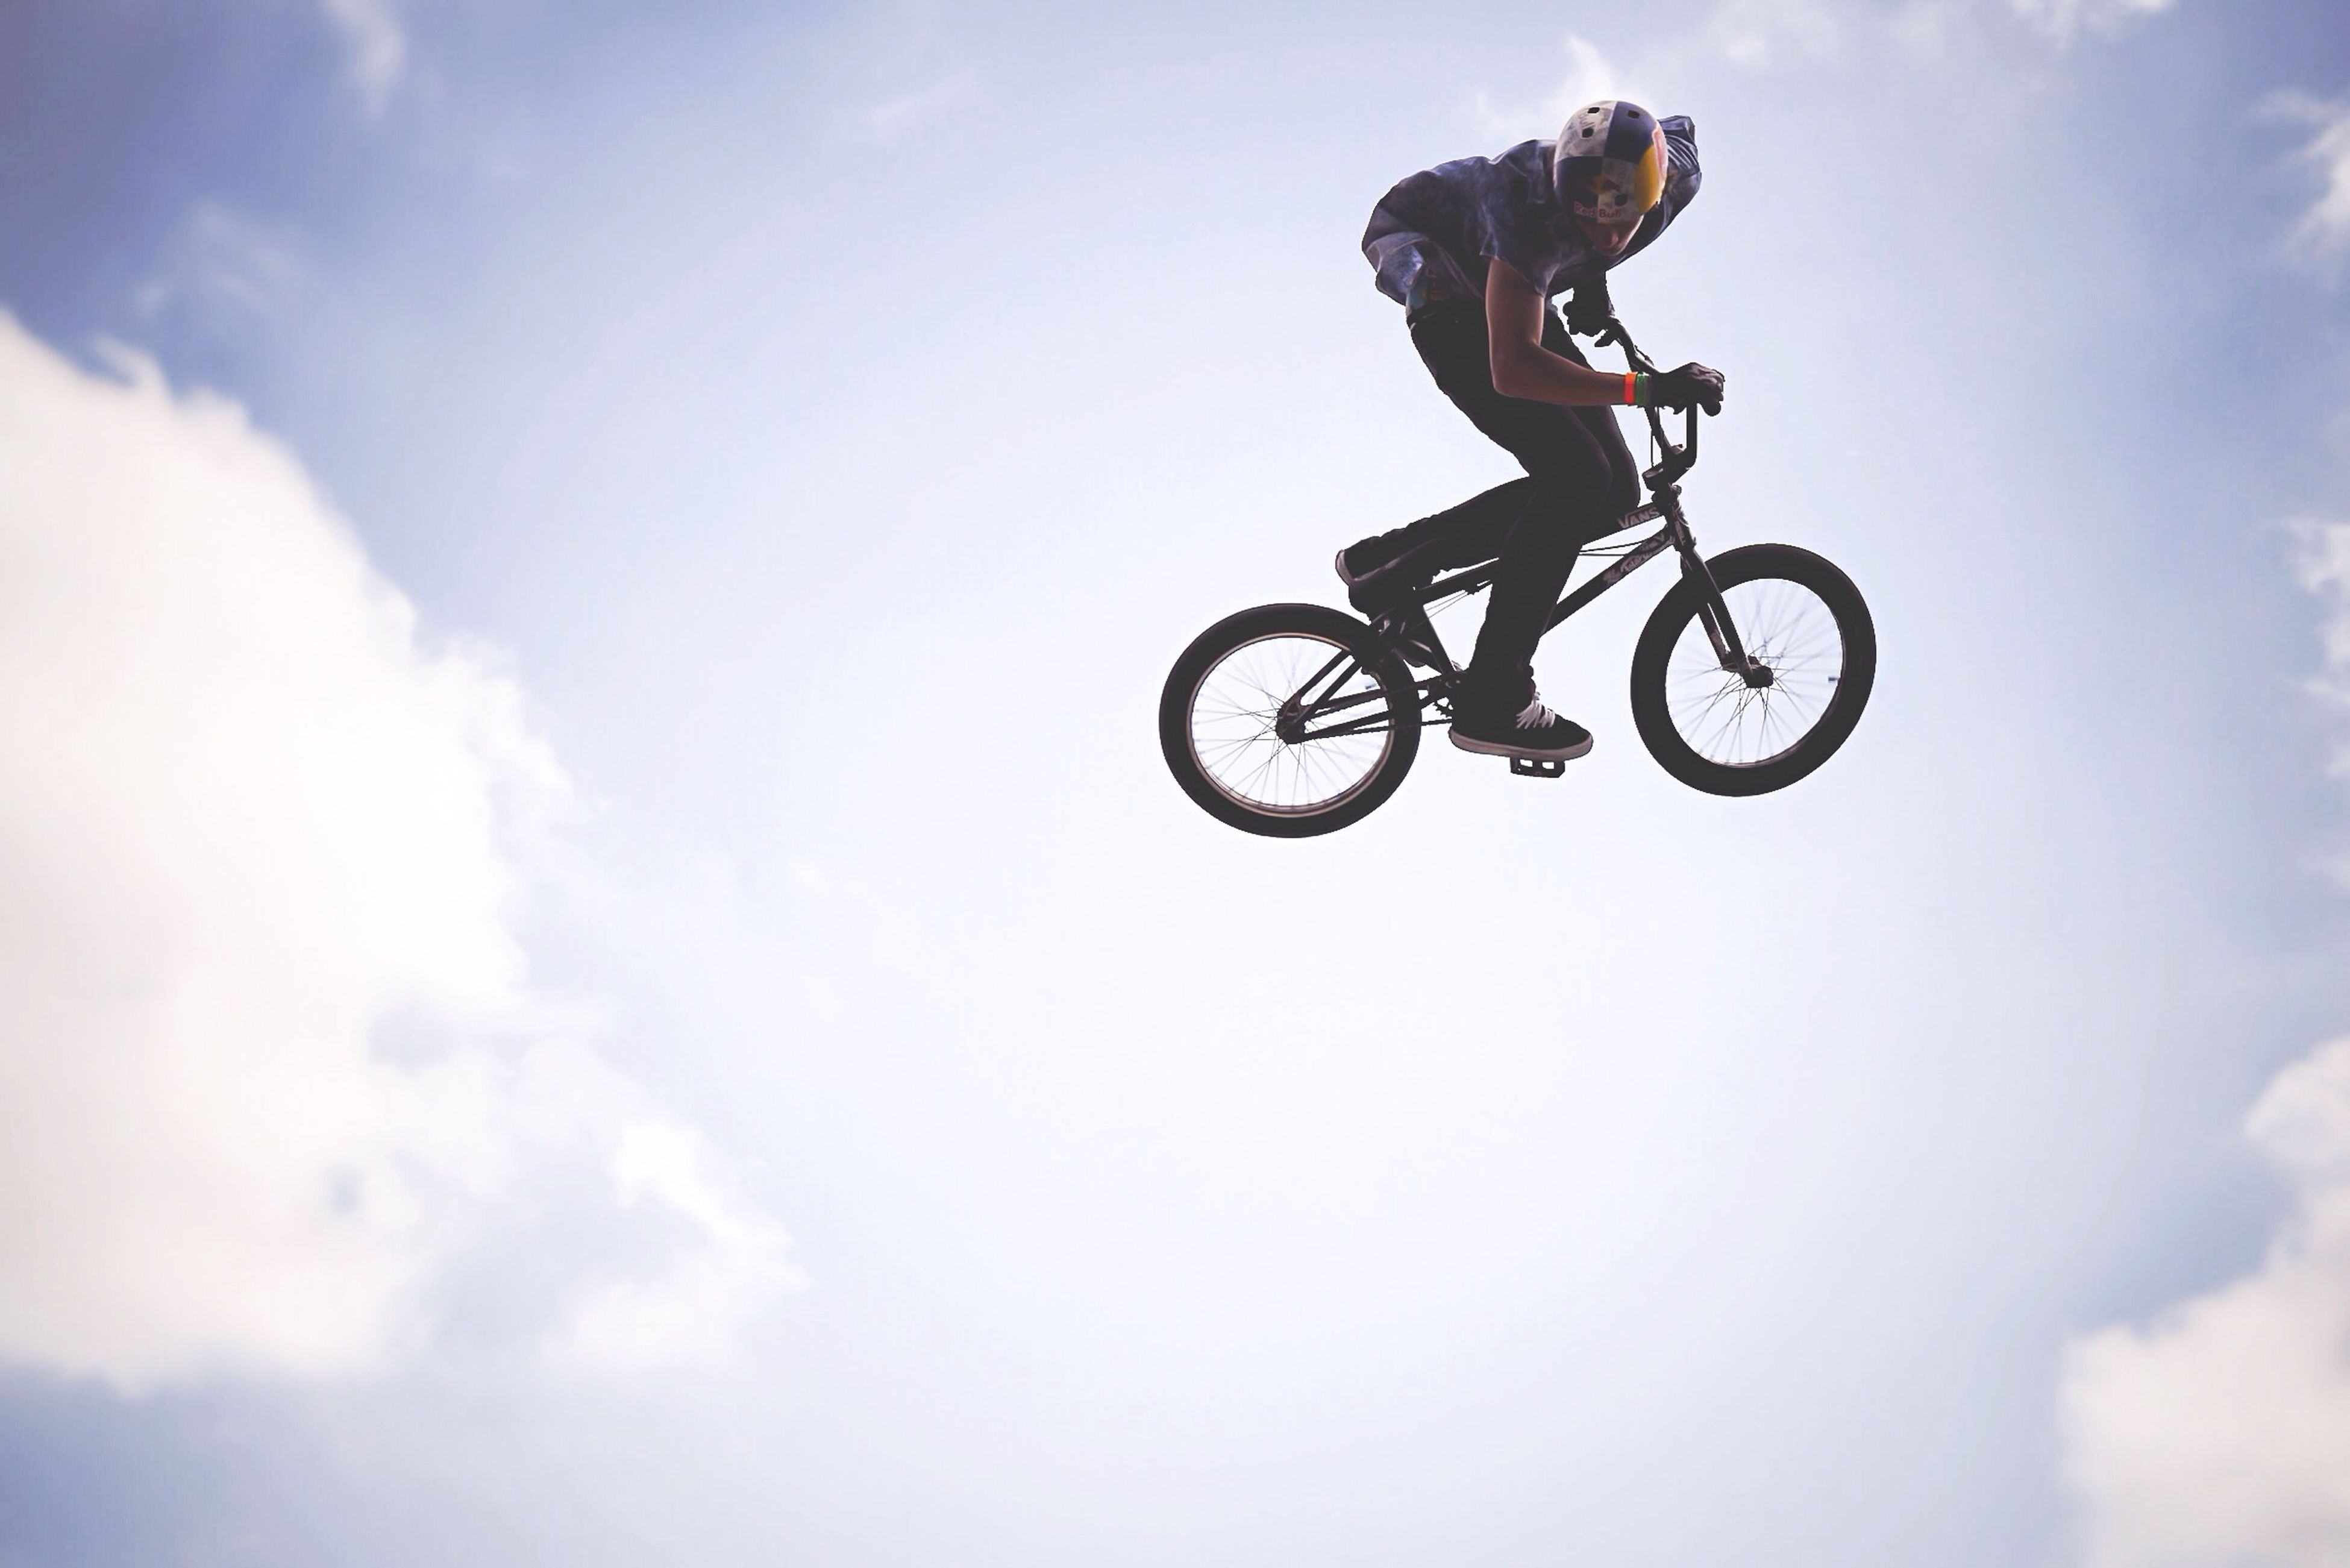 bicycle, sky, transportation, mid-air, extreme sports, sport, low angle view, leisure activity, stunt, mode of transport, cloud - sky, riding, lifestyles, cycling, adventure, full length, men, motion